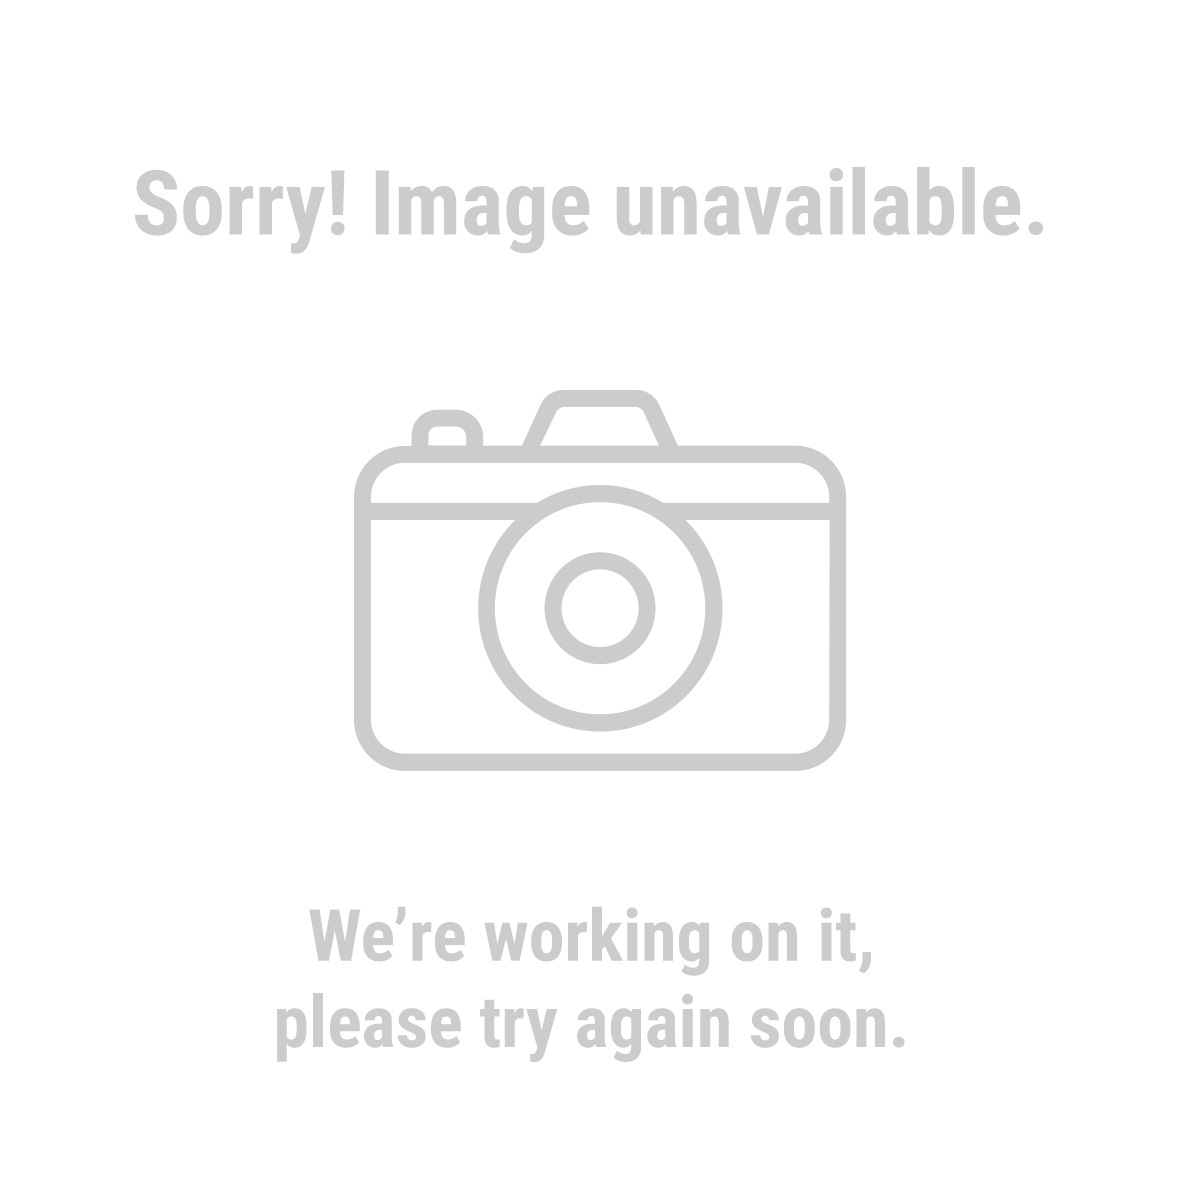 Warrior 68954 6 Piece Triangle Sandpaper Assortment for Wood